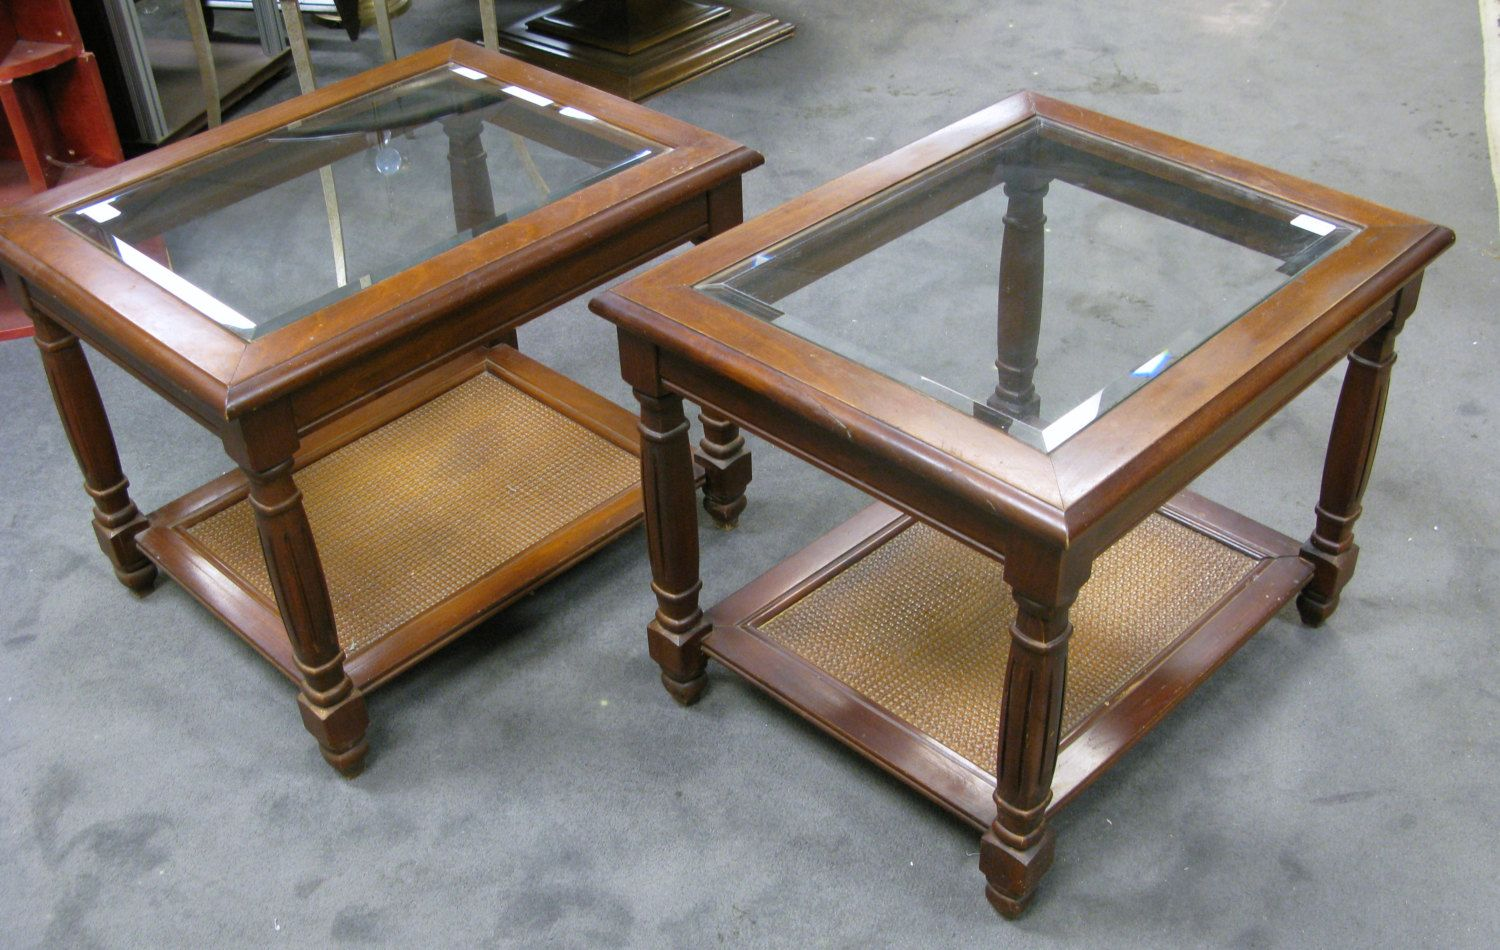 Cherry wood end tables with glass top